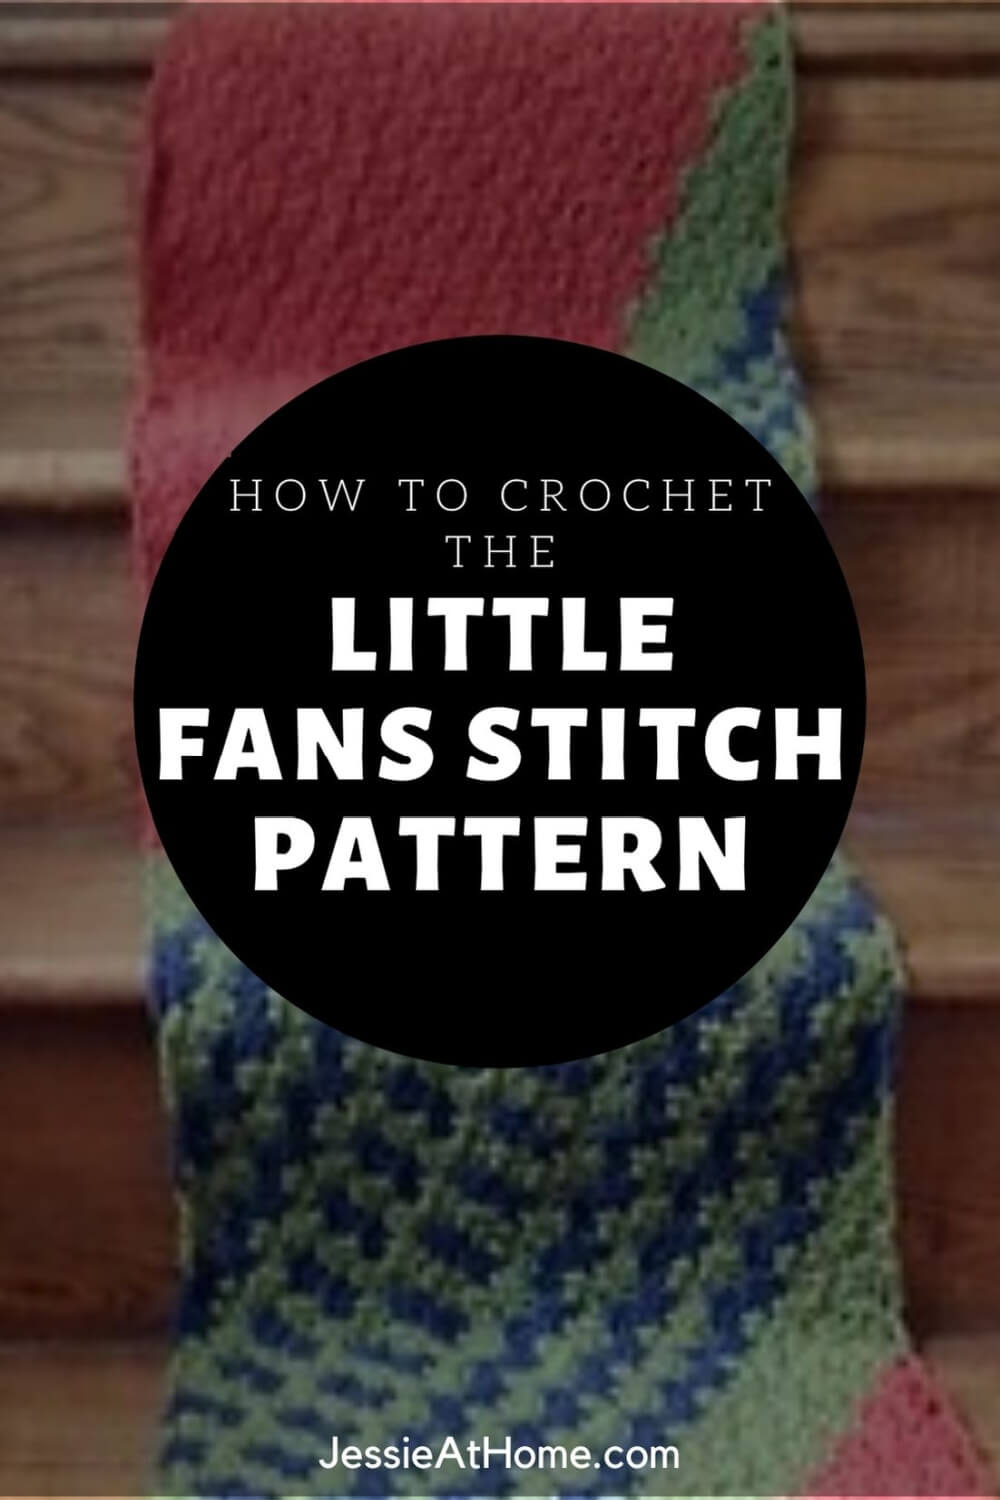 Little Fans Crochet Stitch Pattern Free Tutorial With Video, Chart, and Photos